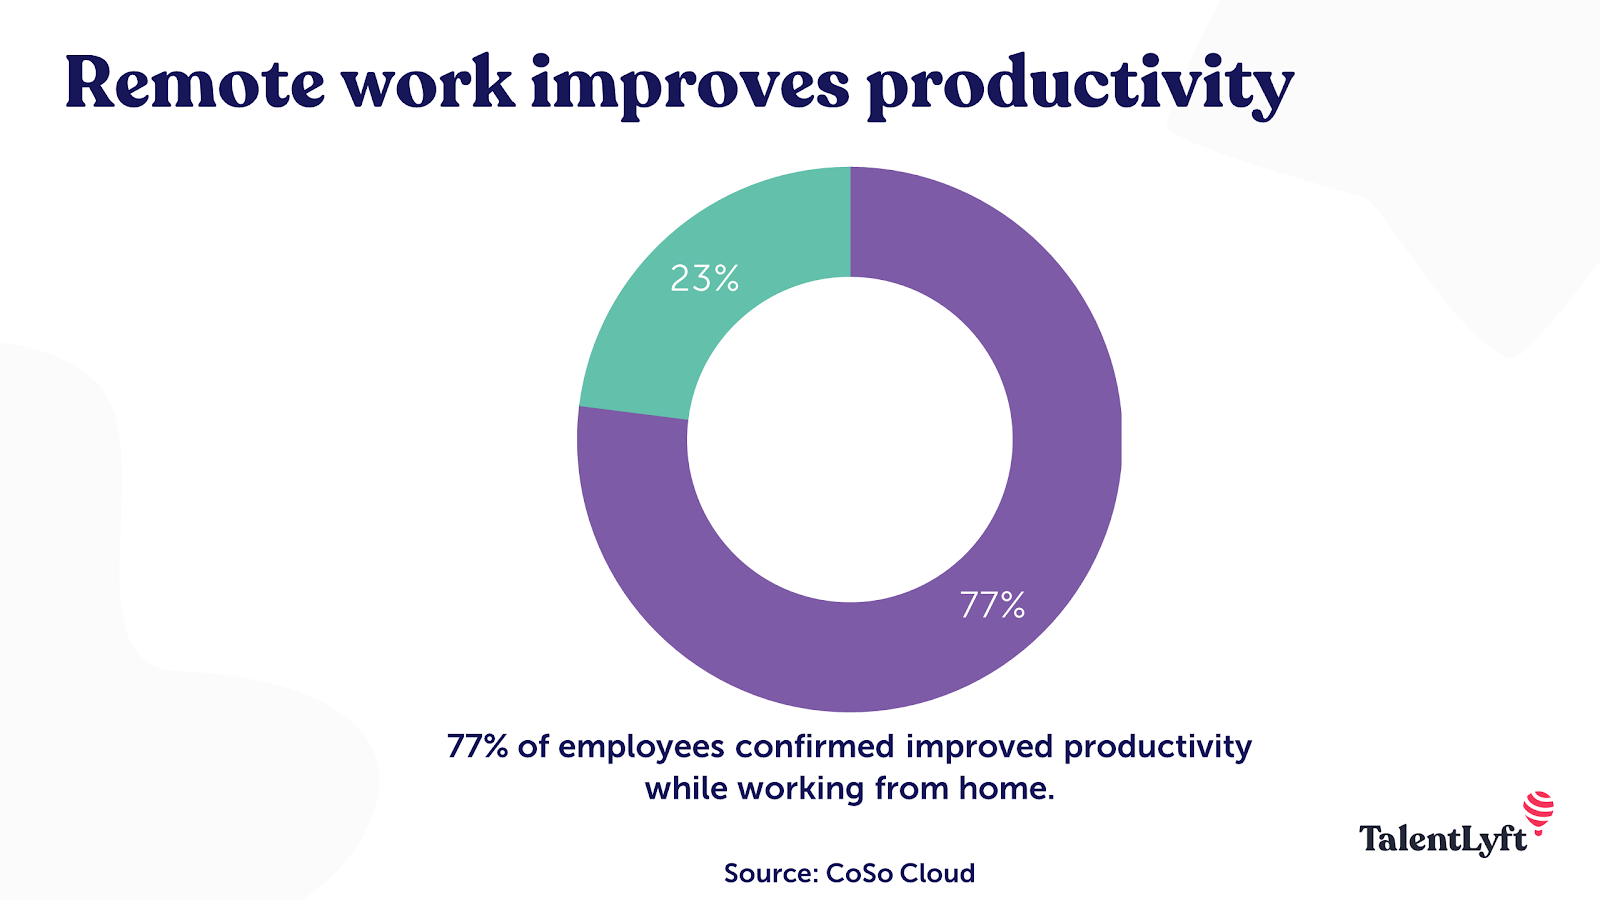 Remote work improves employee productivity